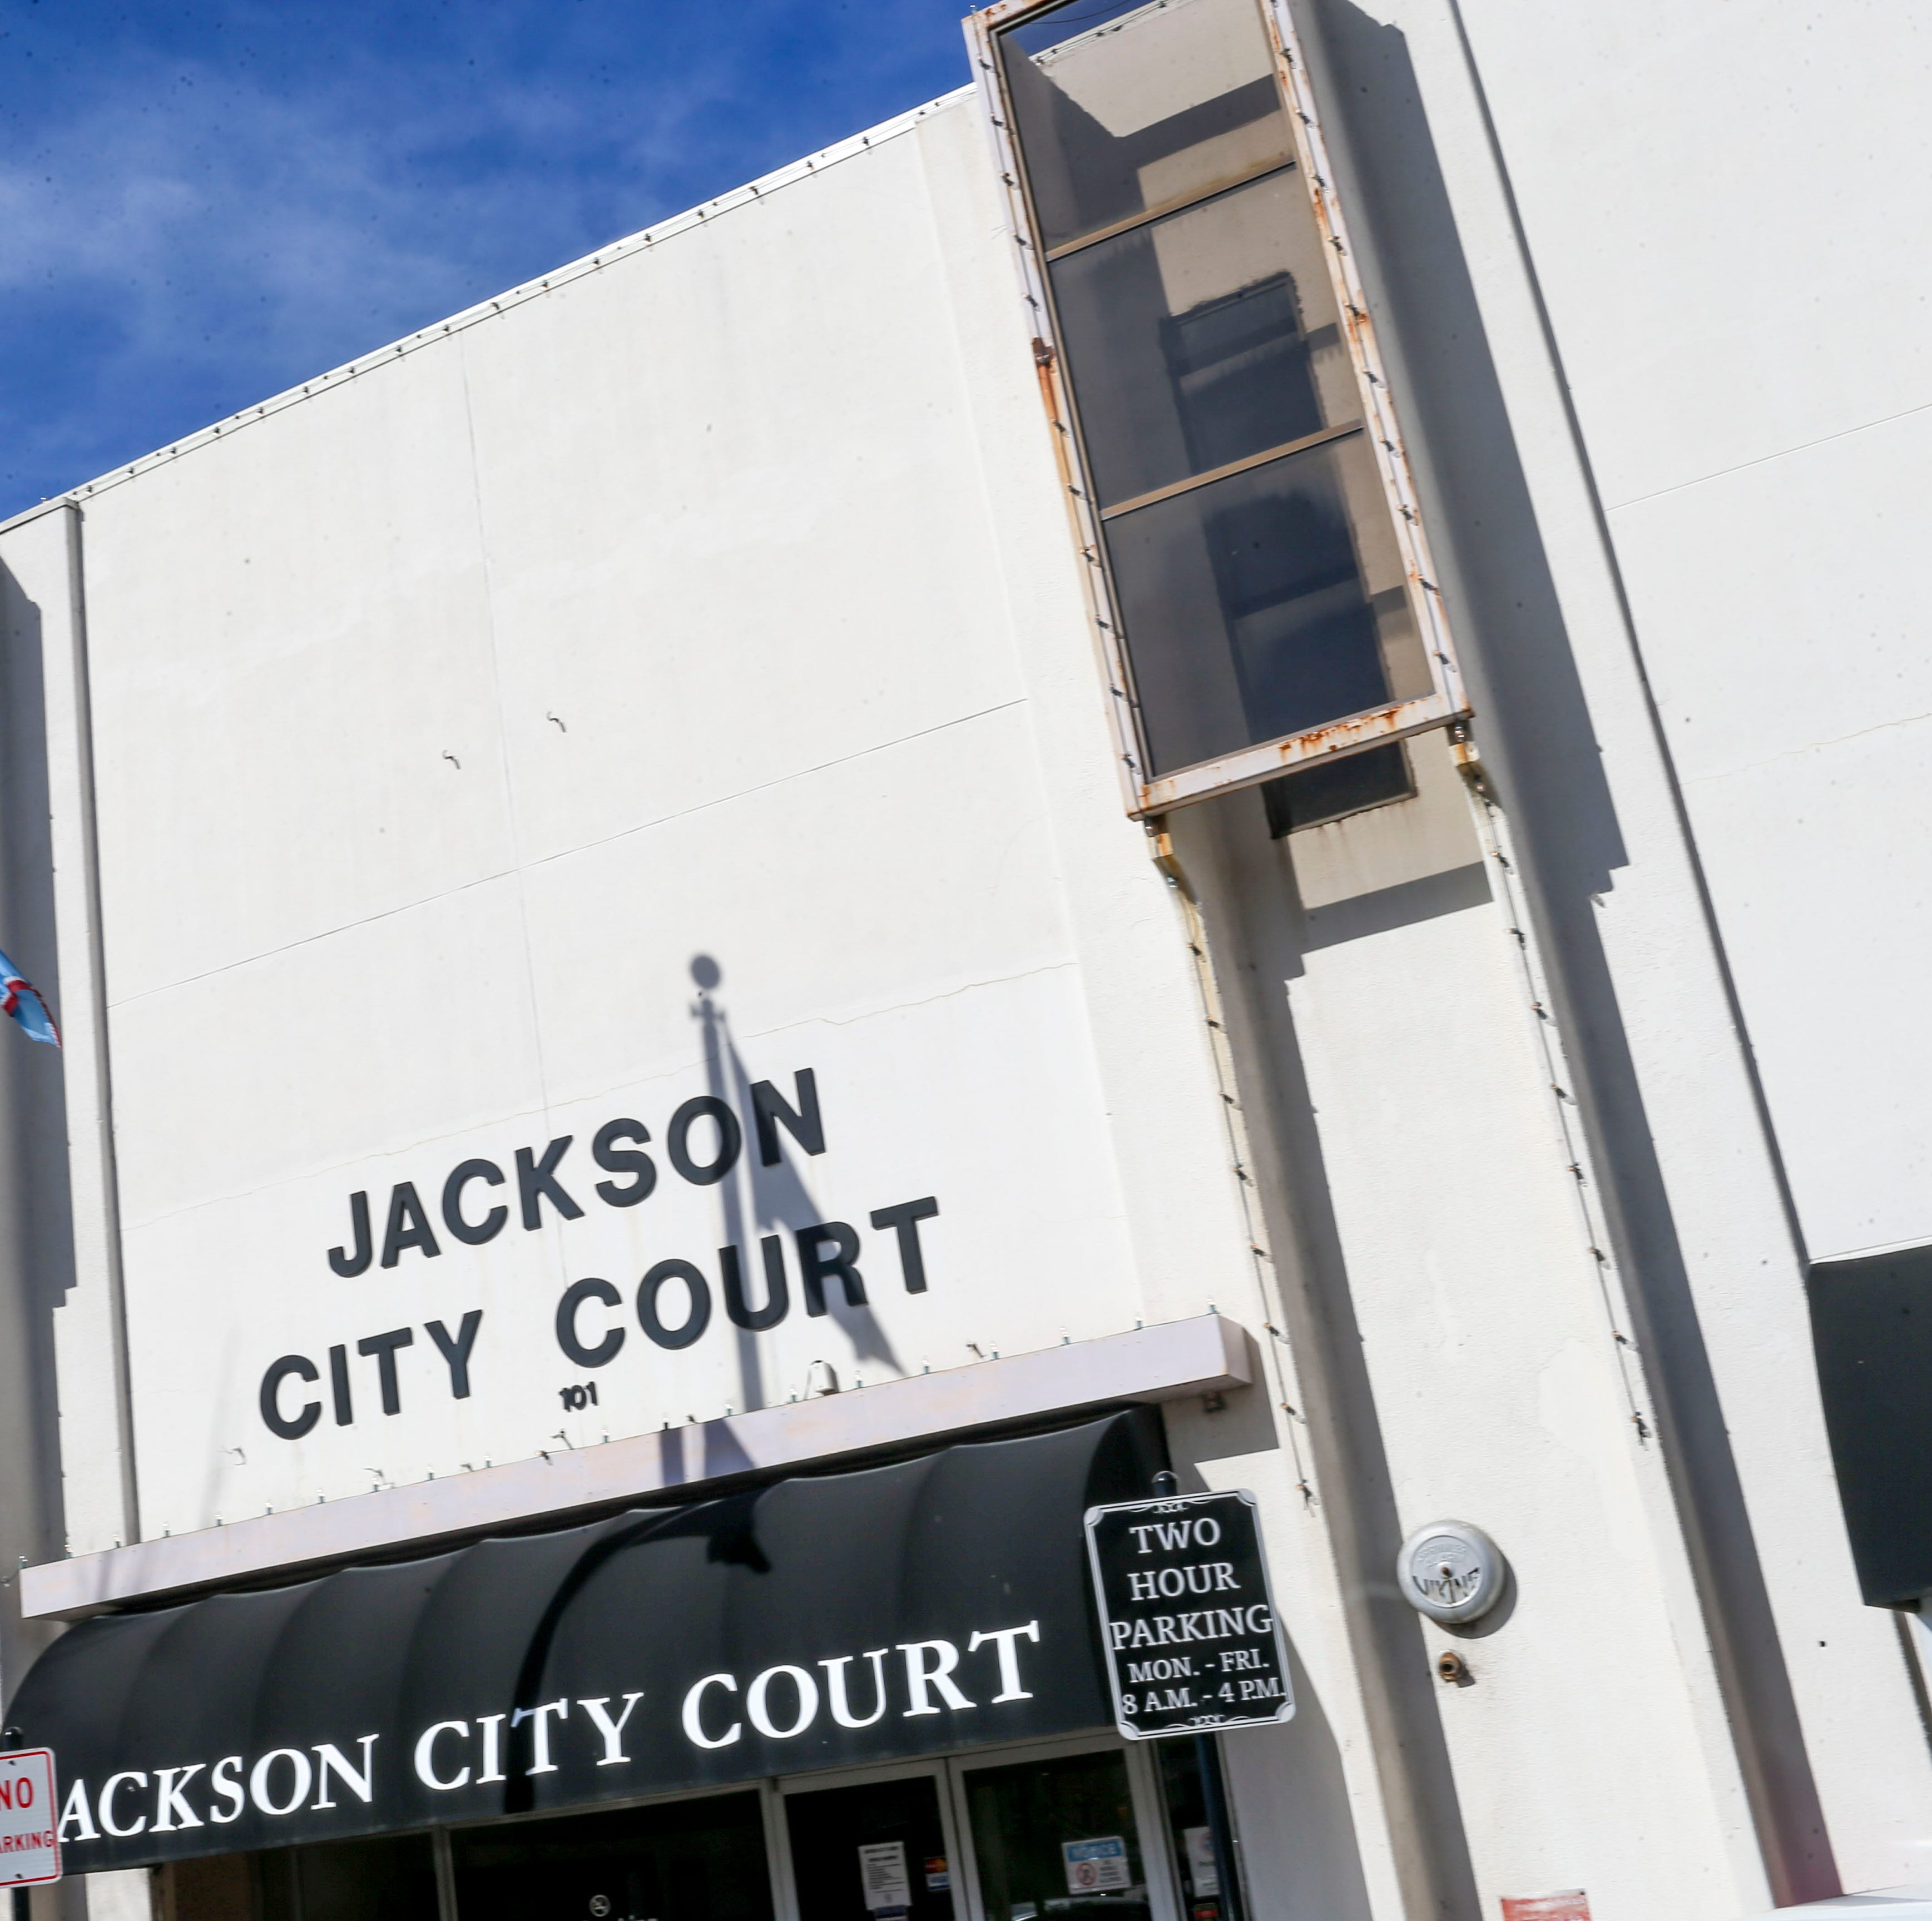 Class-action lawsuit alleges city of Jackson mishandled arrest warrants